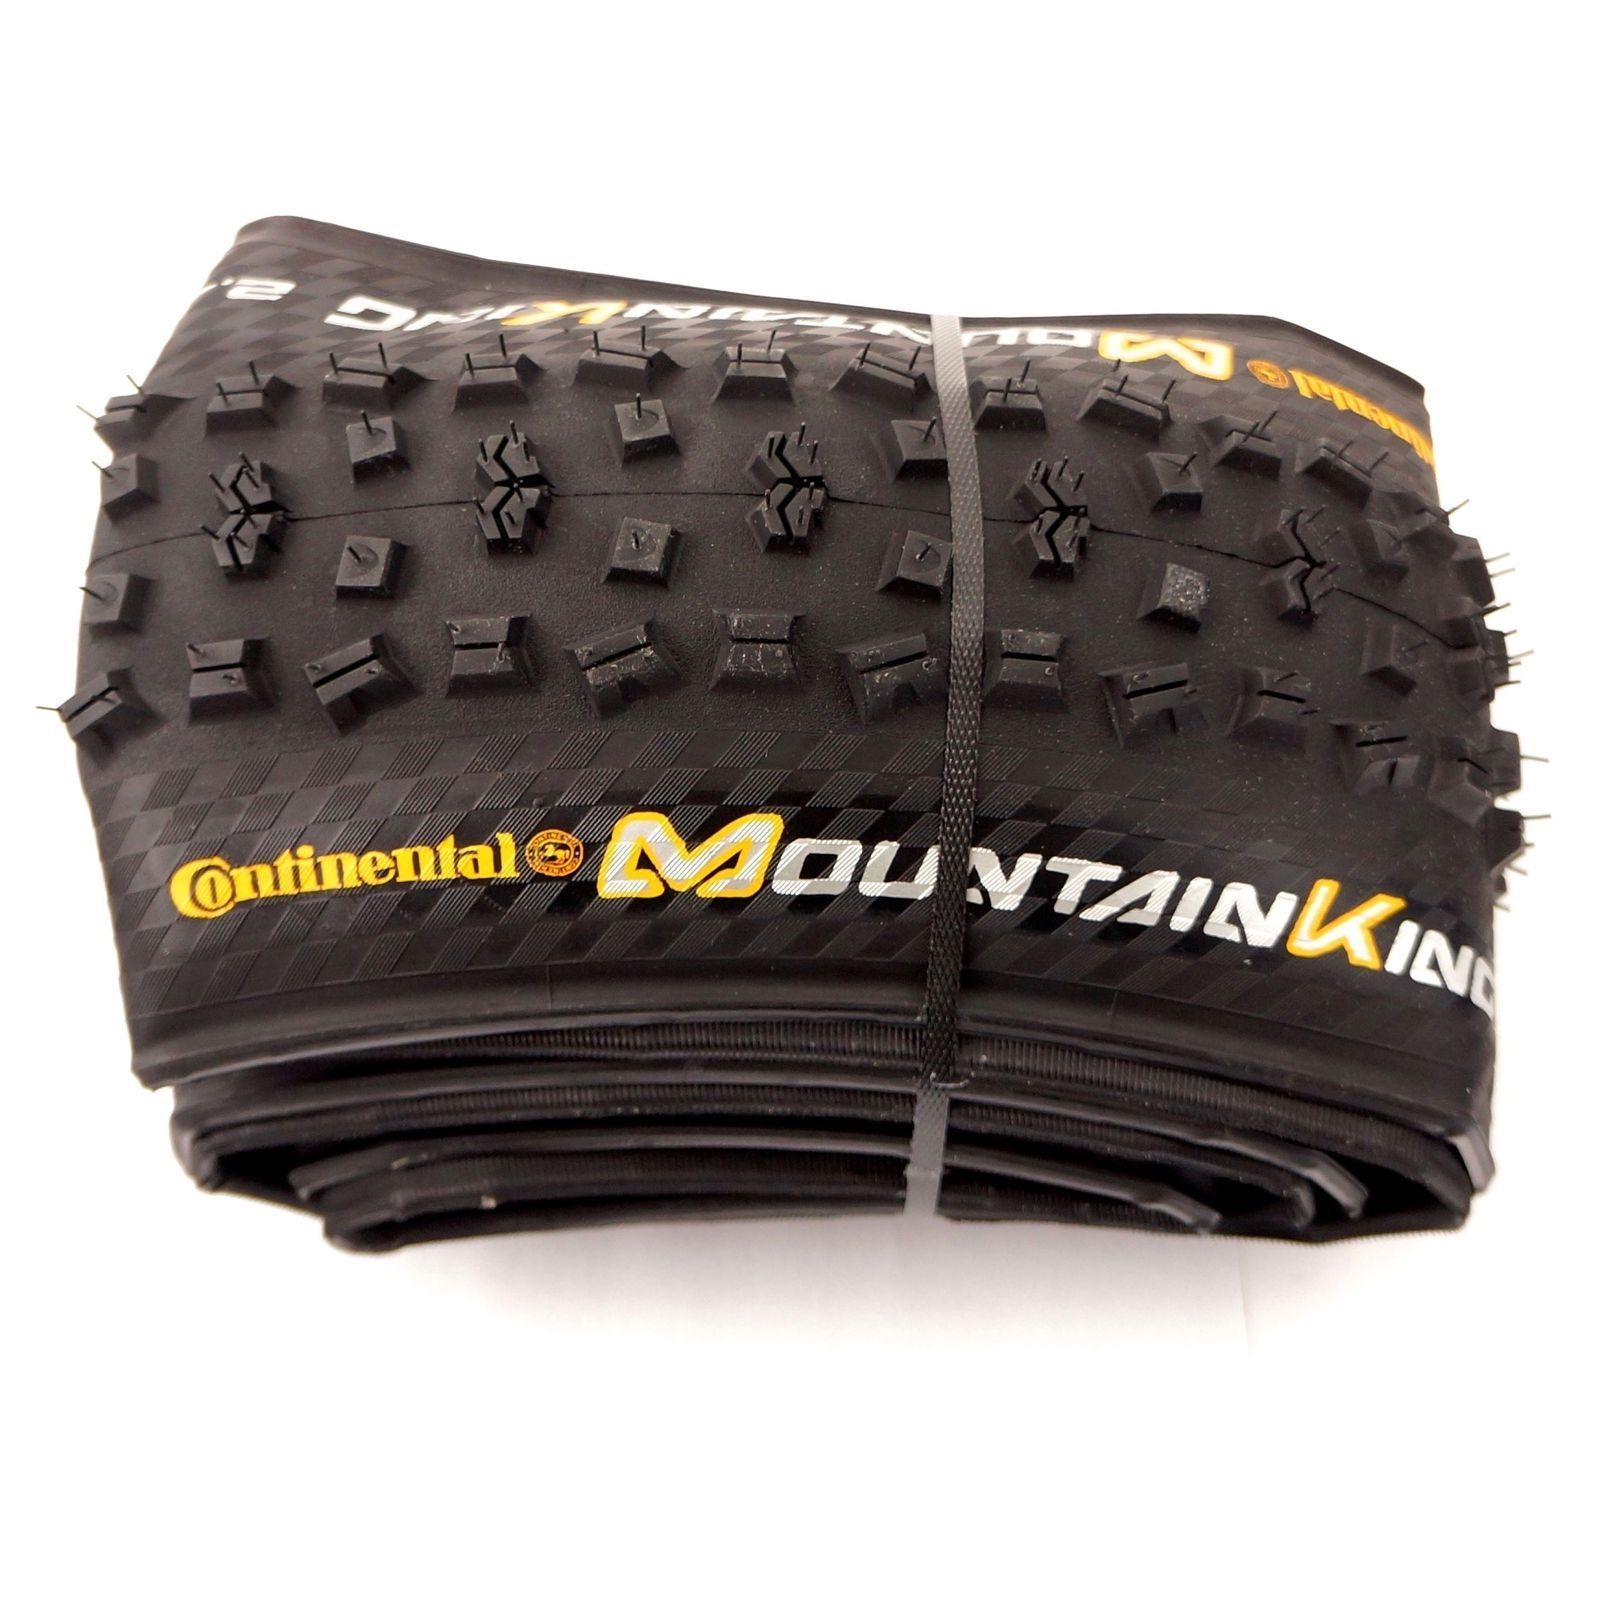 Pneu 29x2.2 Continental MoutainKing ProTection Para Bicicleta